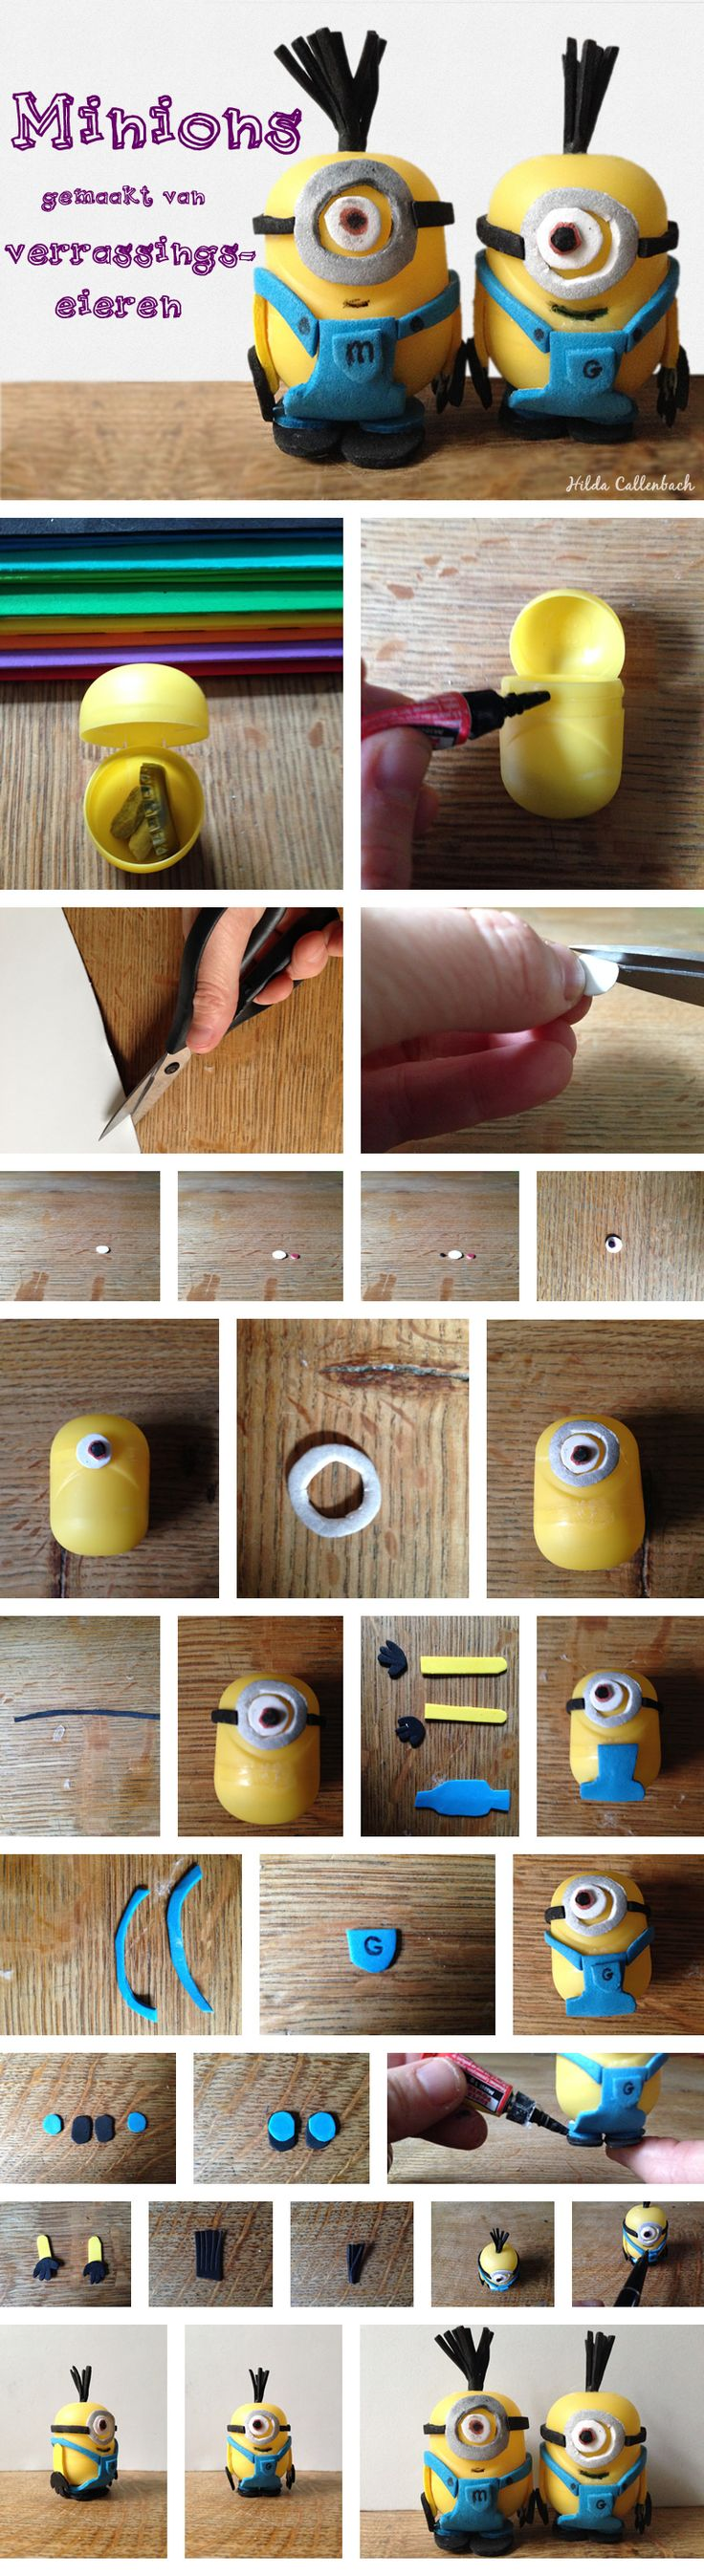 Casper wilde zooo graag een minion... Toen zag ik dat een verrassingsei van Kindersurprise al bijna een minion is. Aan de slag!  Making a minion out of a surpise egg. DIY